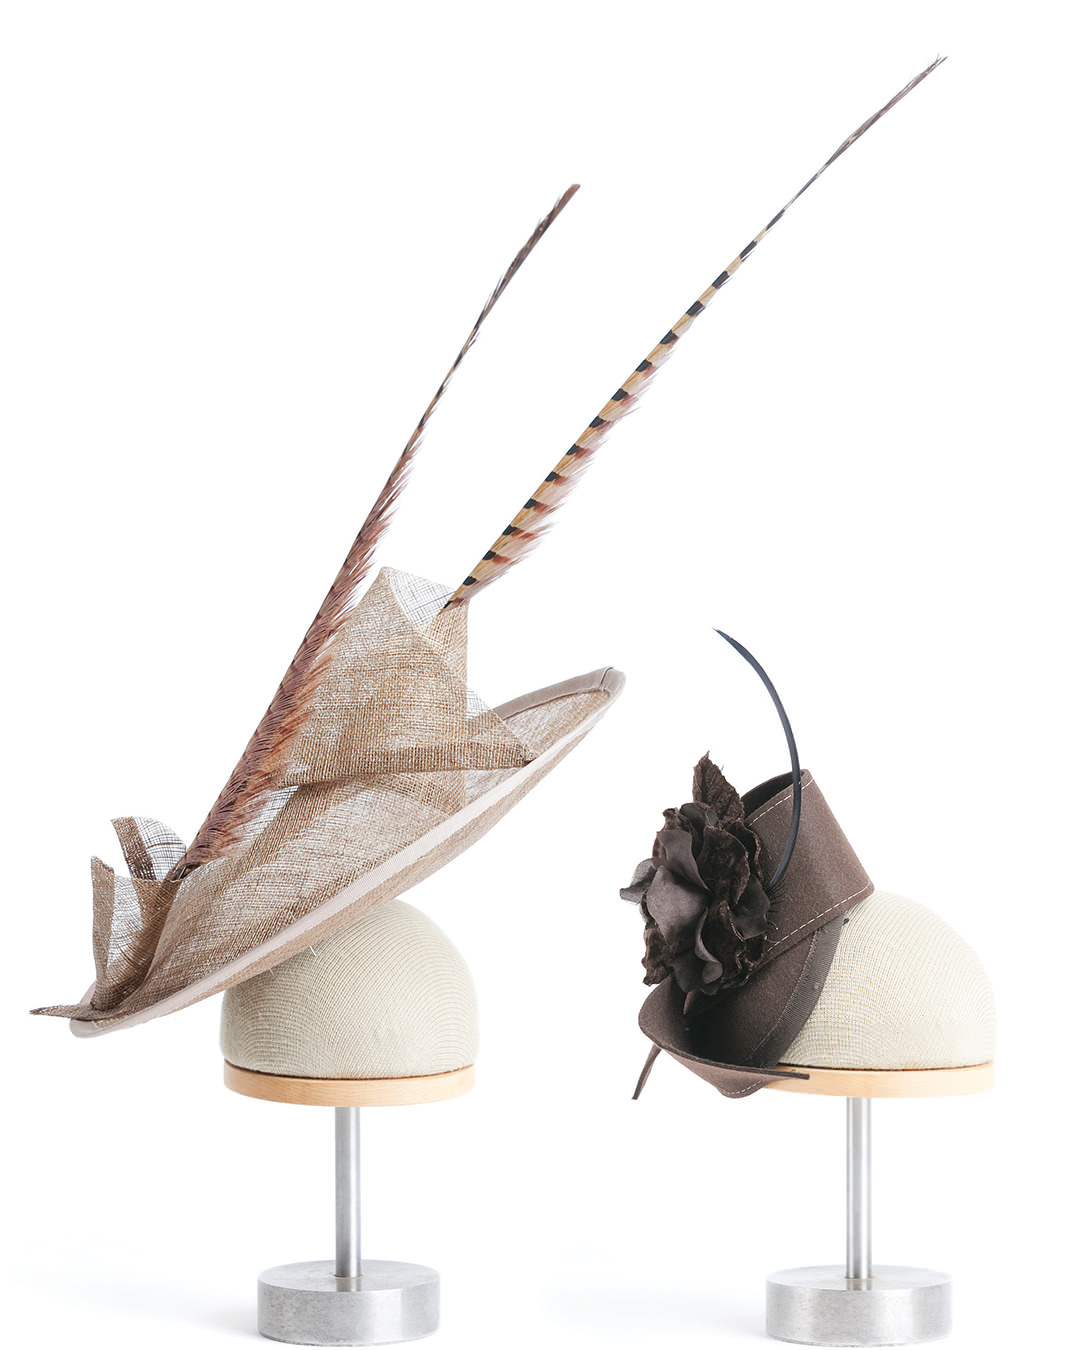 NUVO Magazine: The fascinator